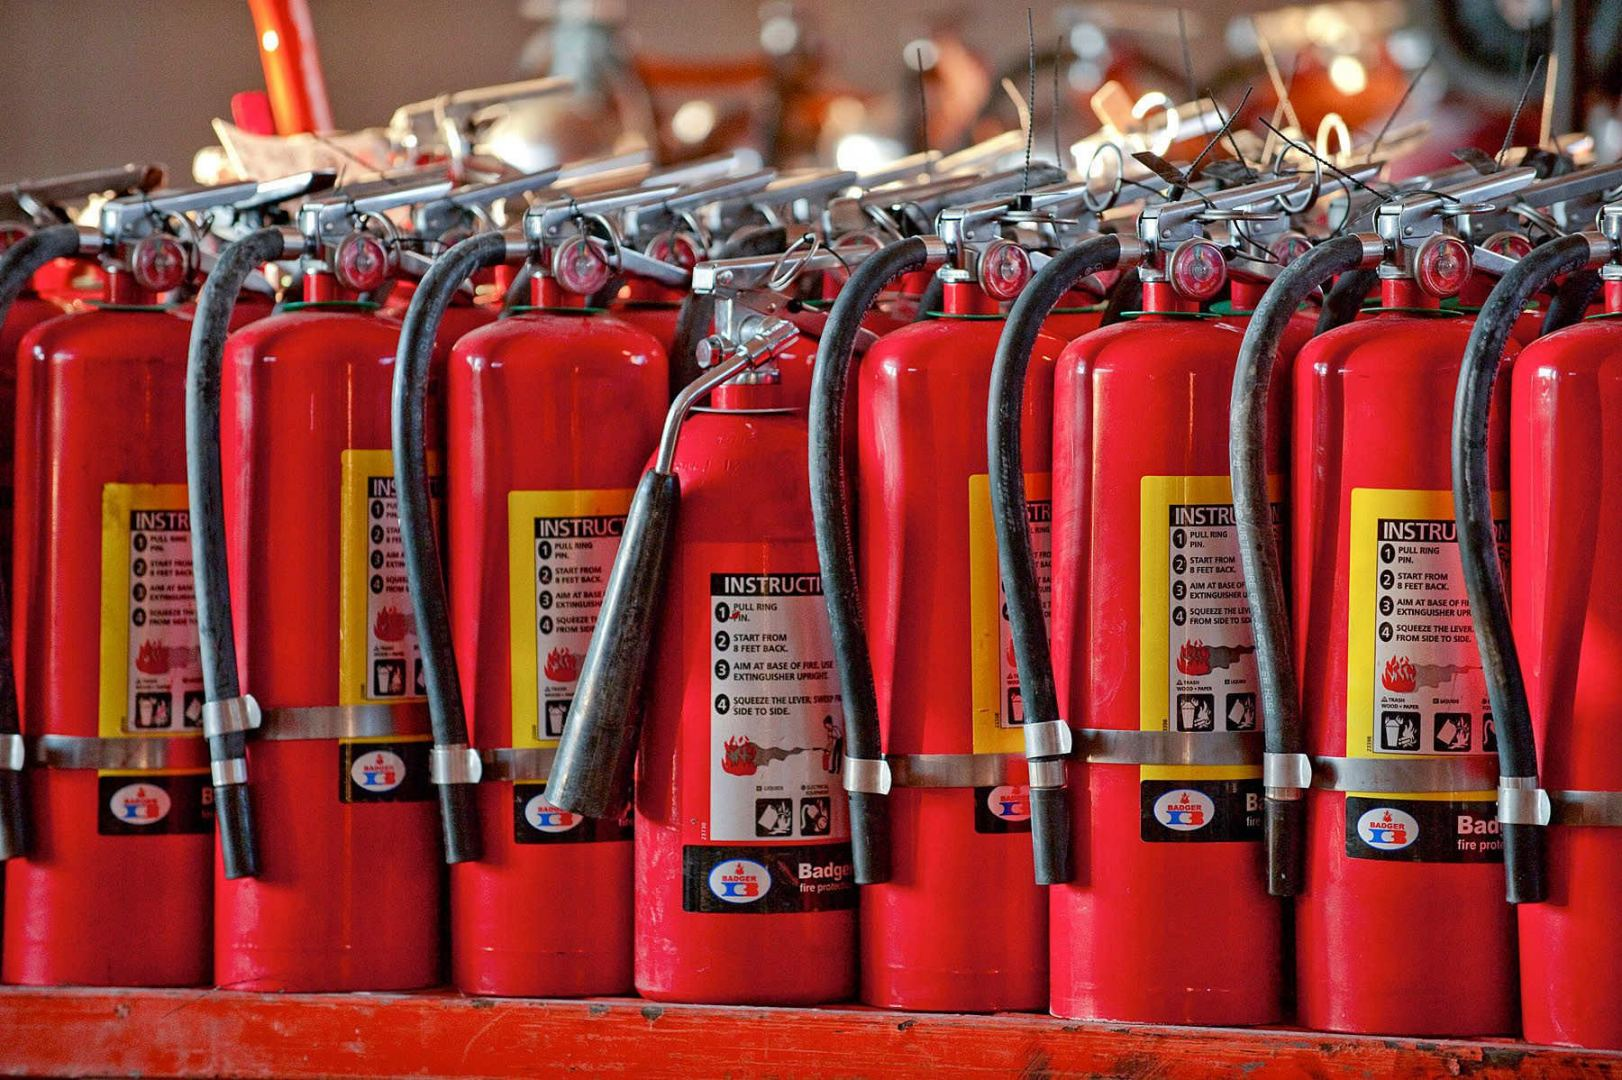 Azerbaijan's state postal operator to acquire extinguishers via tender